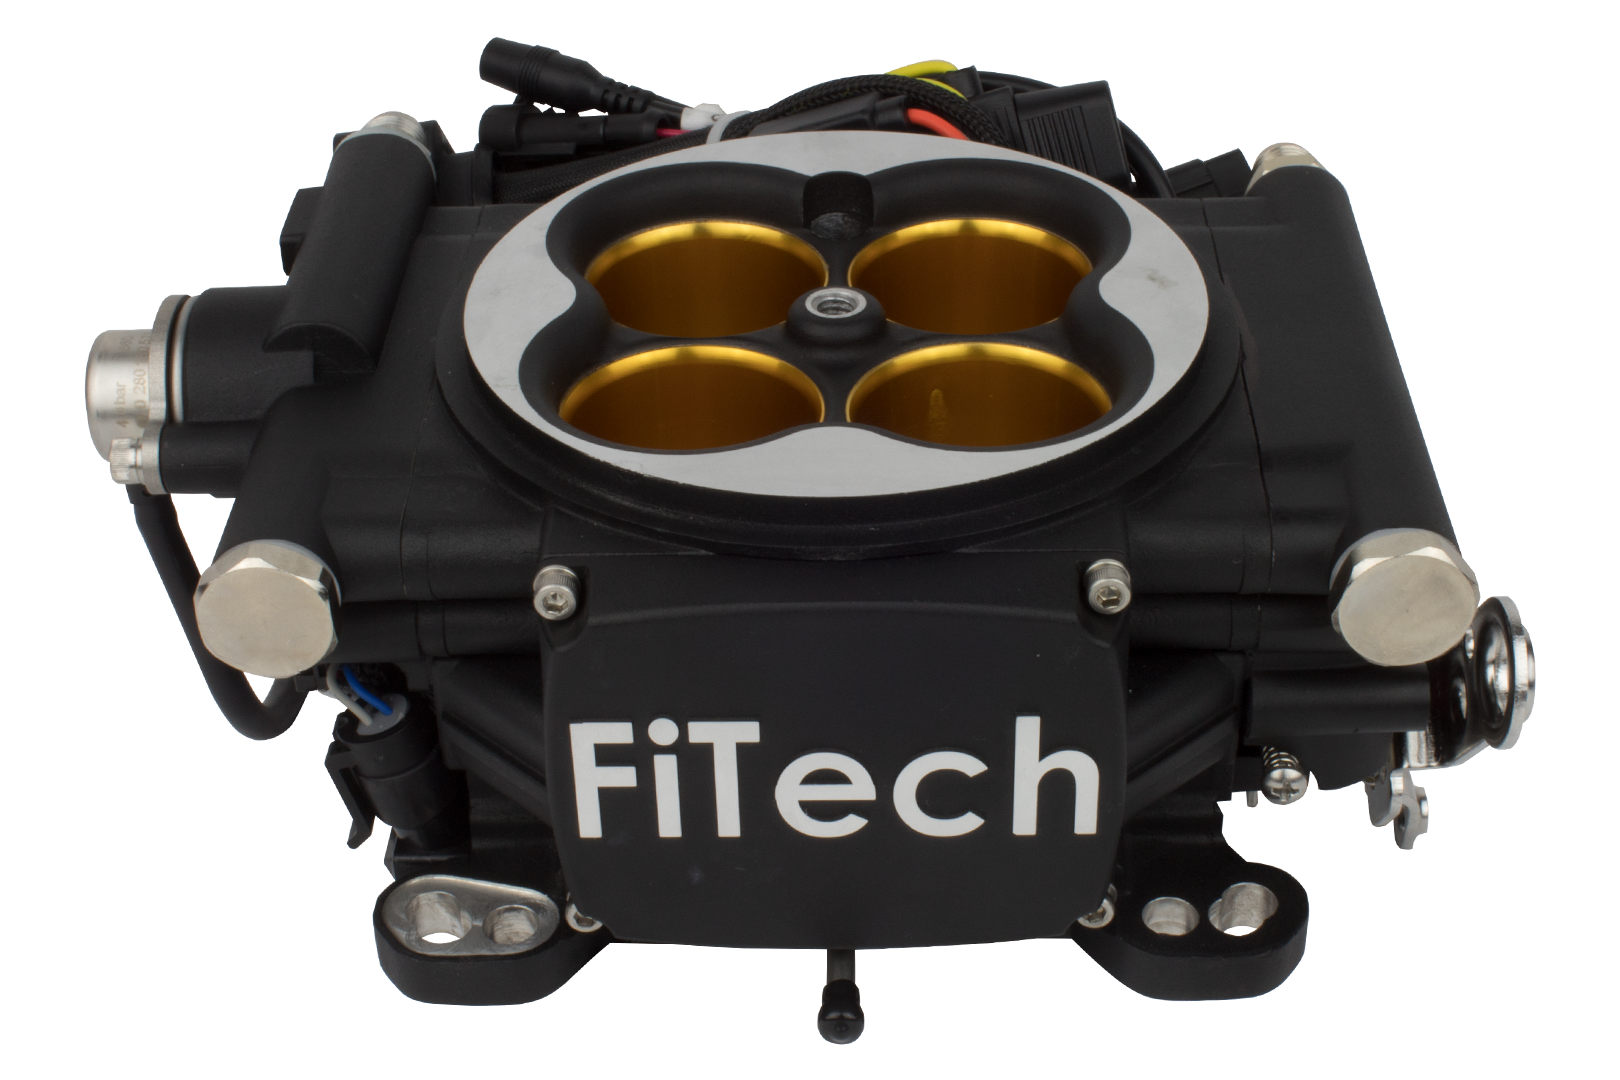 30012 - Go EFI 8 - 1200 HP EFI System - Power Adder - Matte Black Finish - FiTech